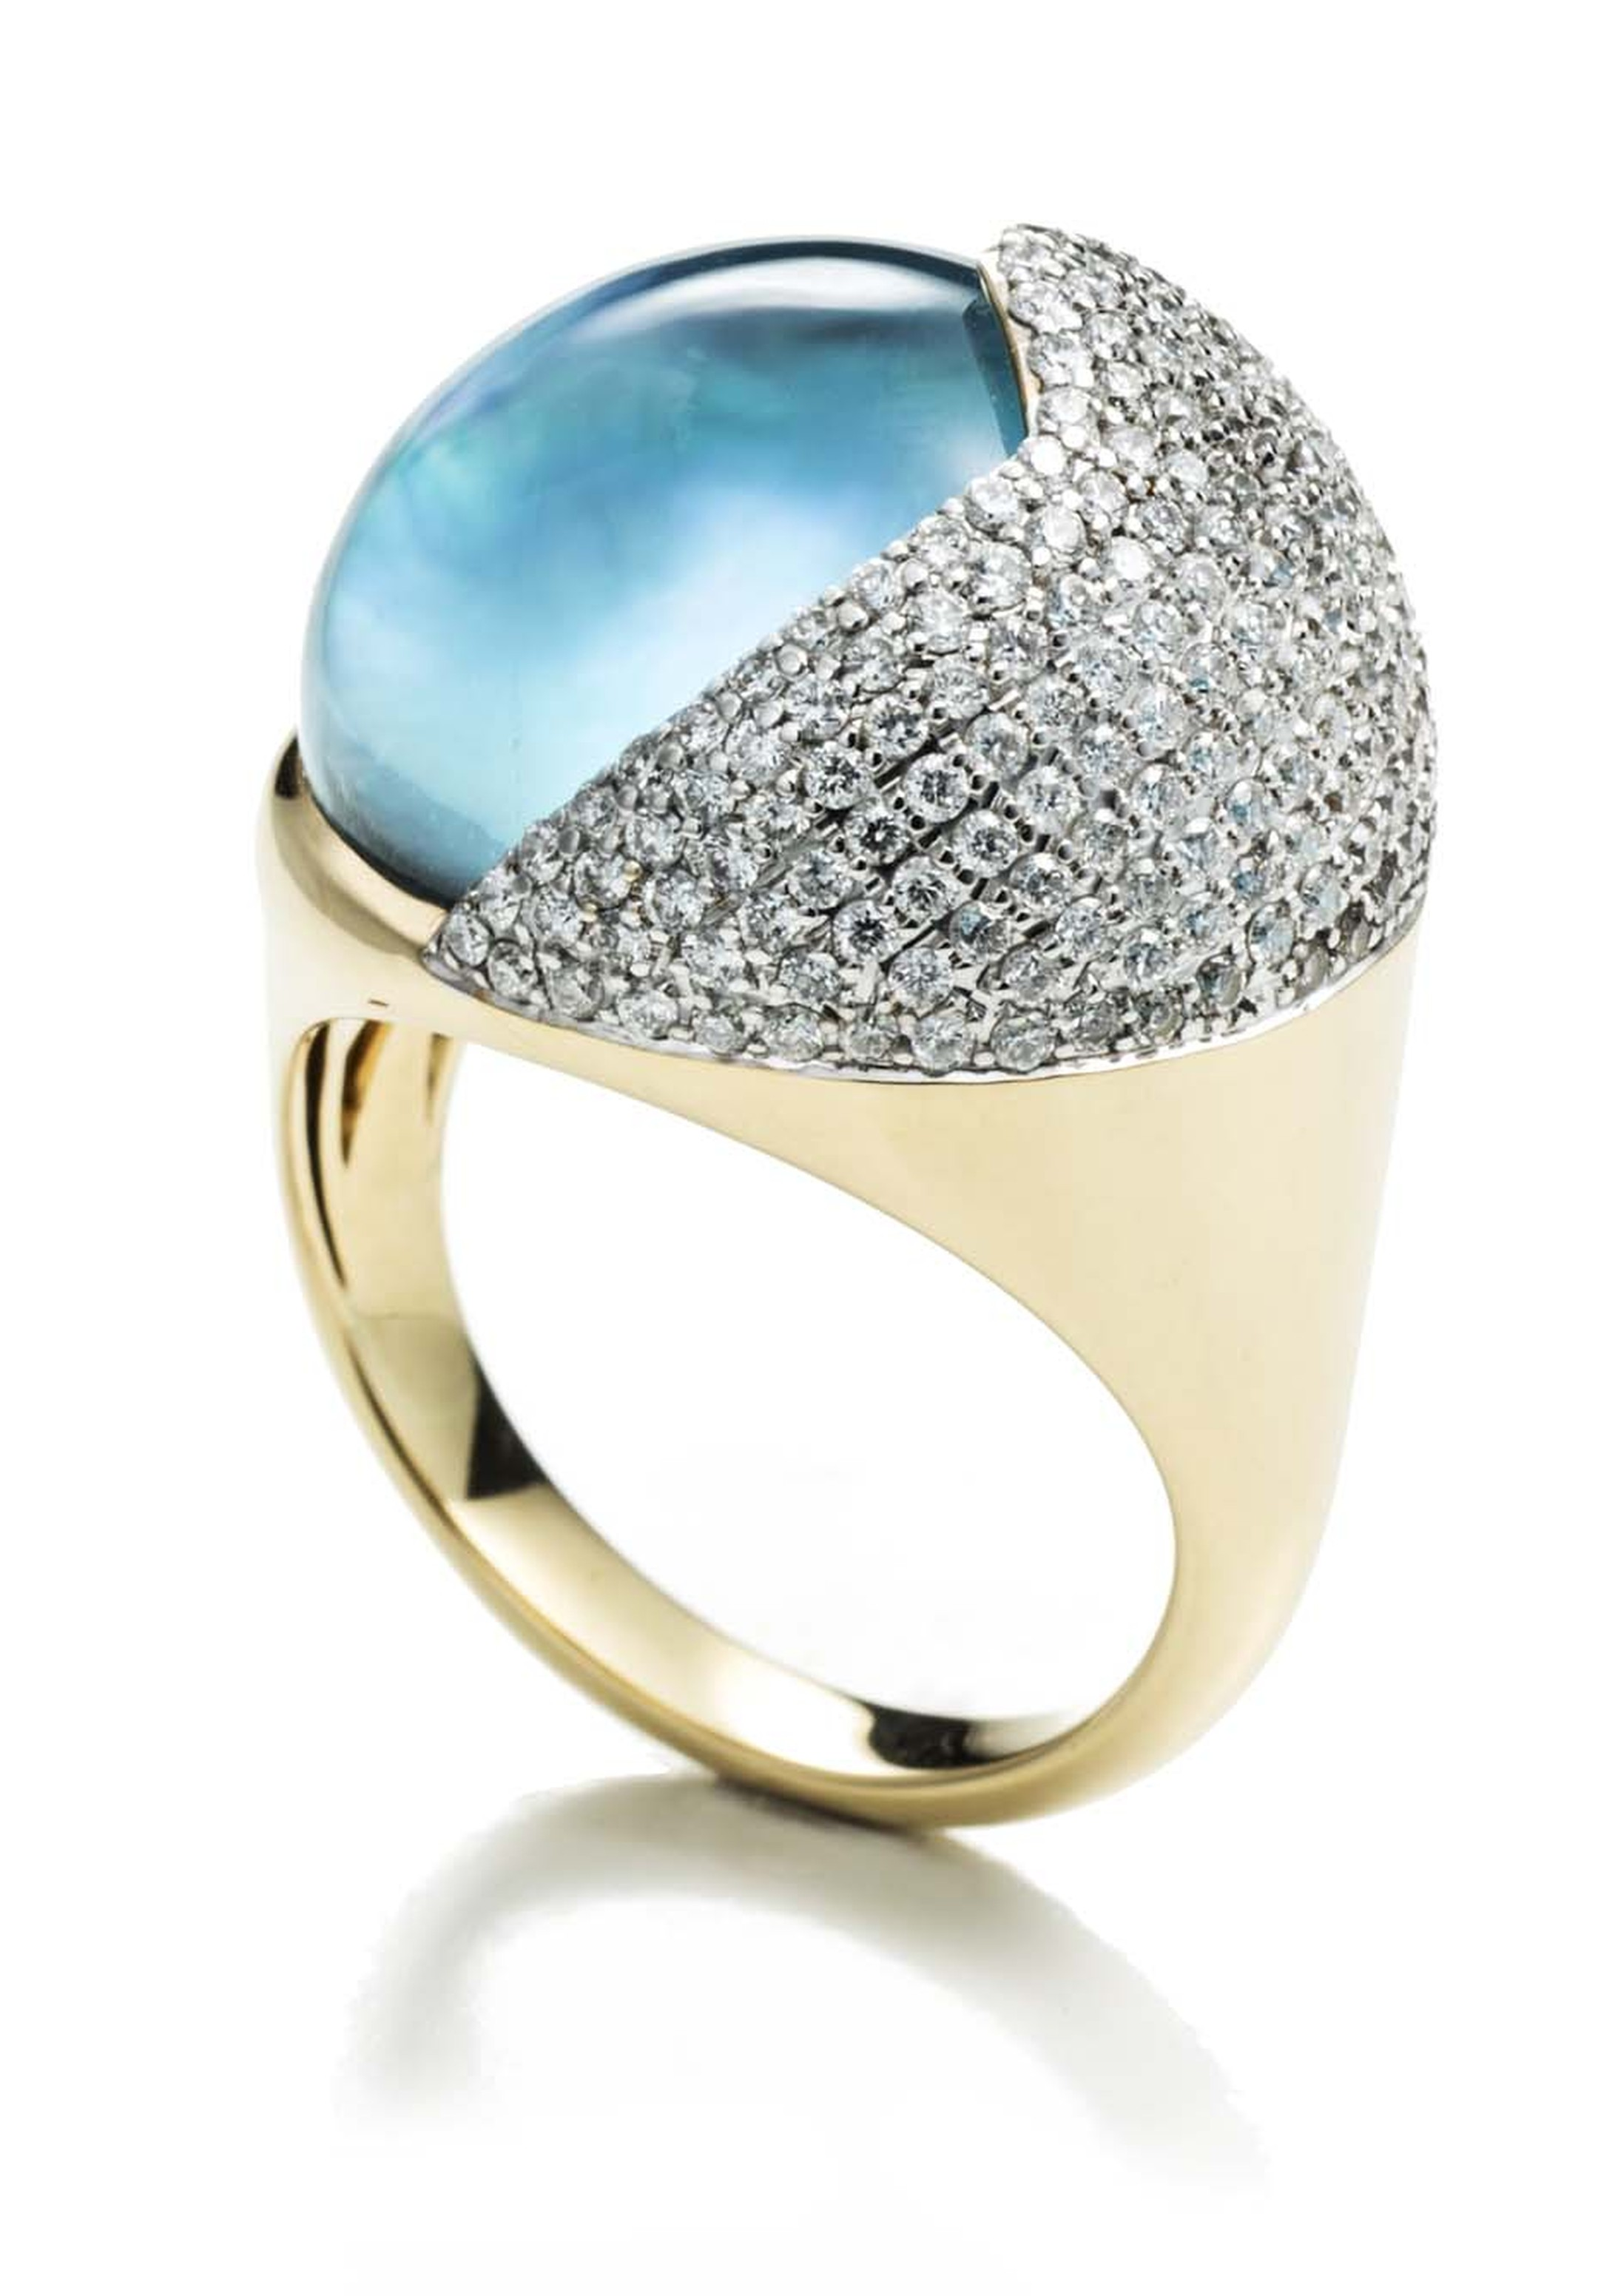 Kara Ross Petra Smooth Contour ring in gold with sky blue topaz and diamonds